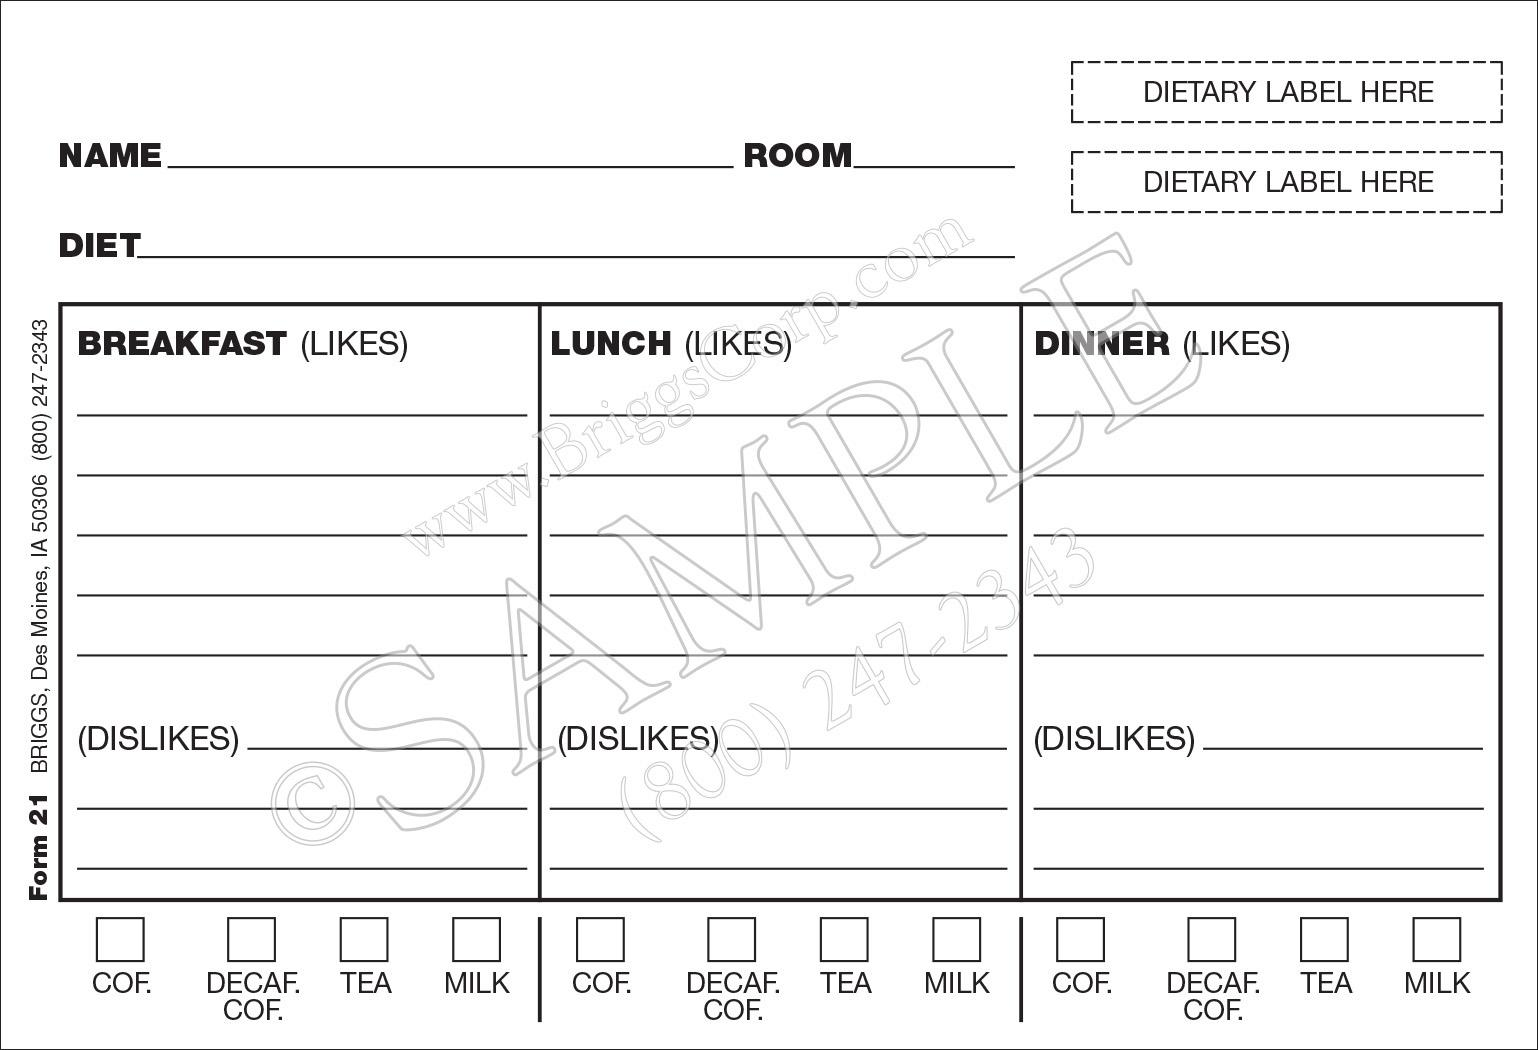 diet card with laminate sheet